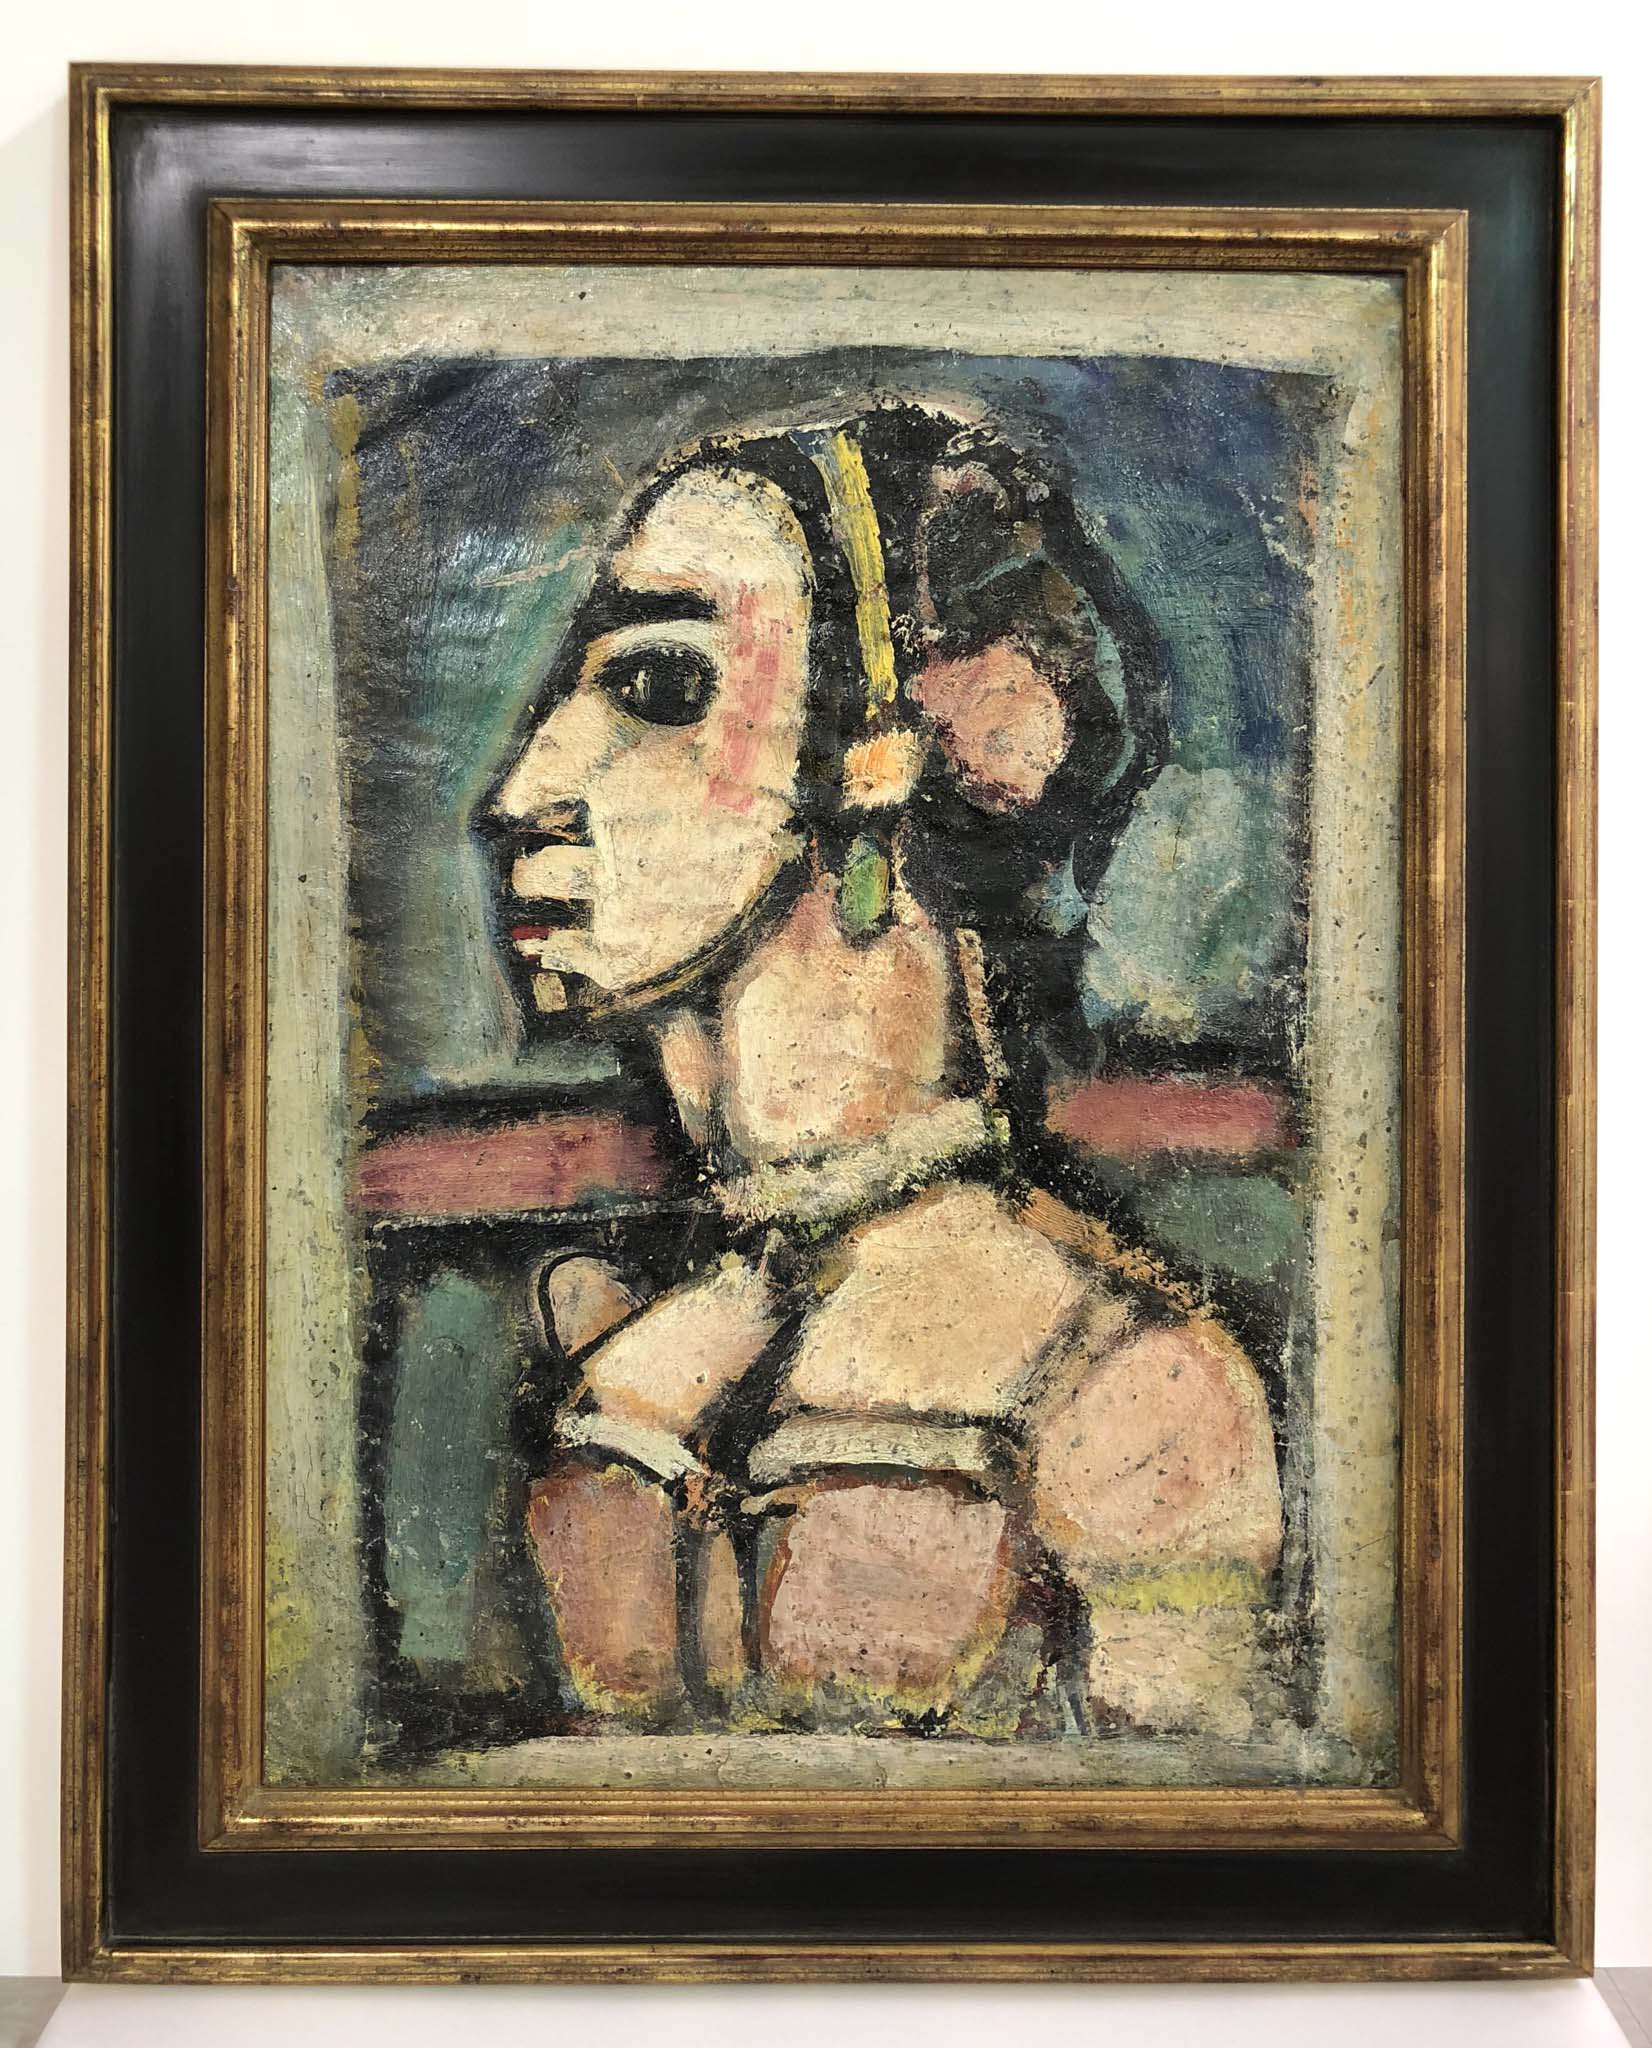 Painting by Georges Rouault